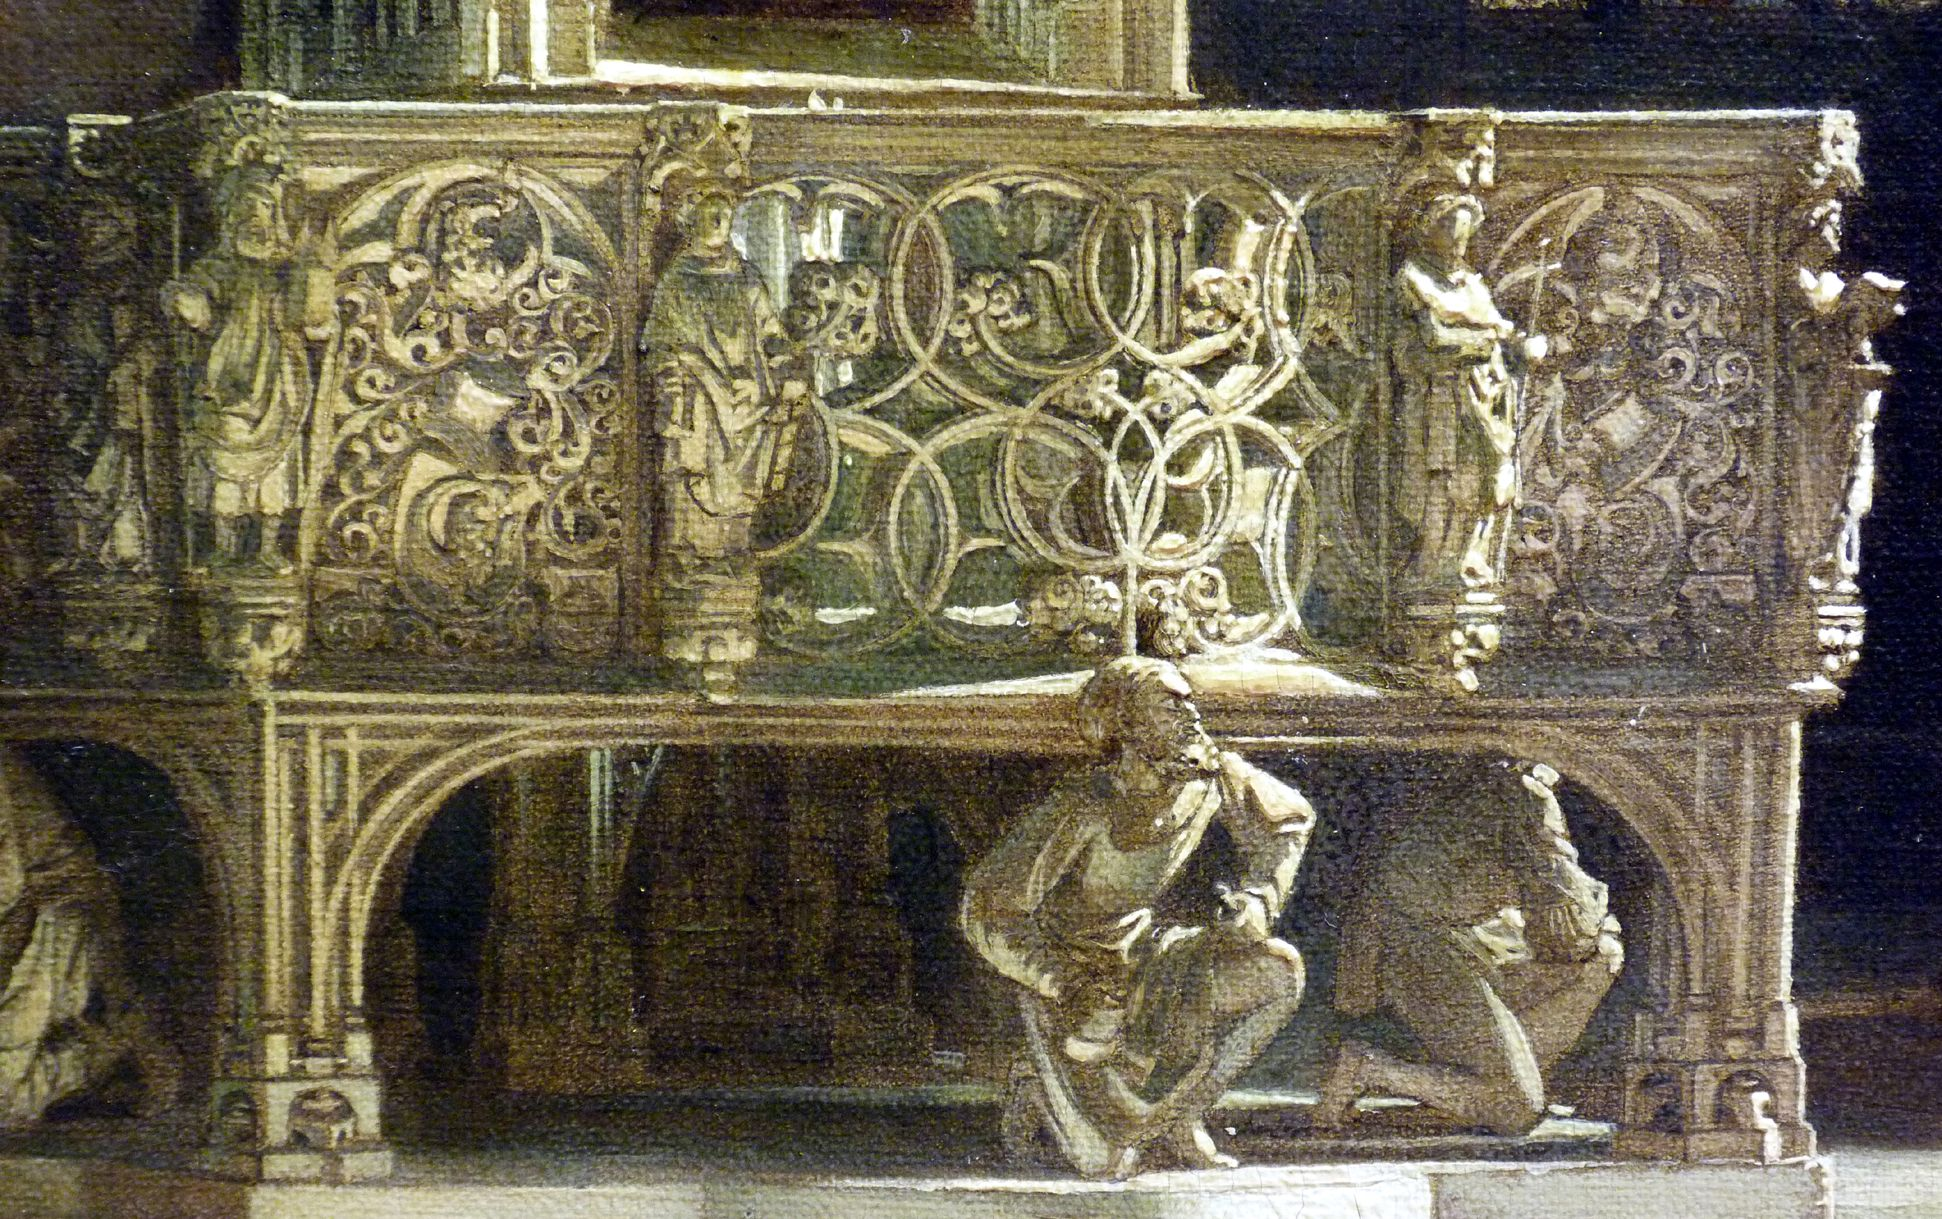 Tabernacle in St Lorenz-Church in Nuremberg with bridal procession form the early 17th century Tabernacle, walking platform